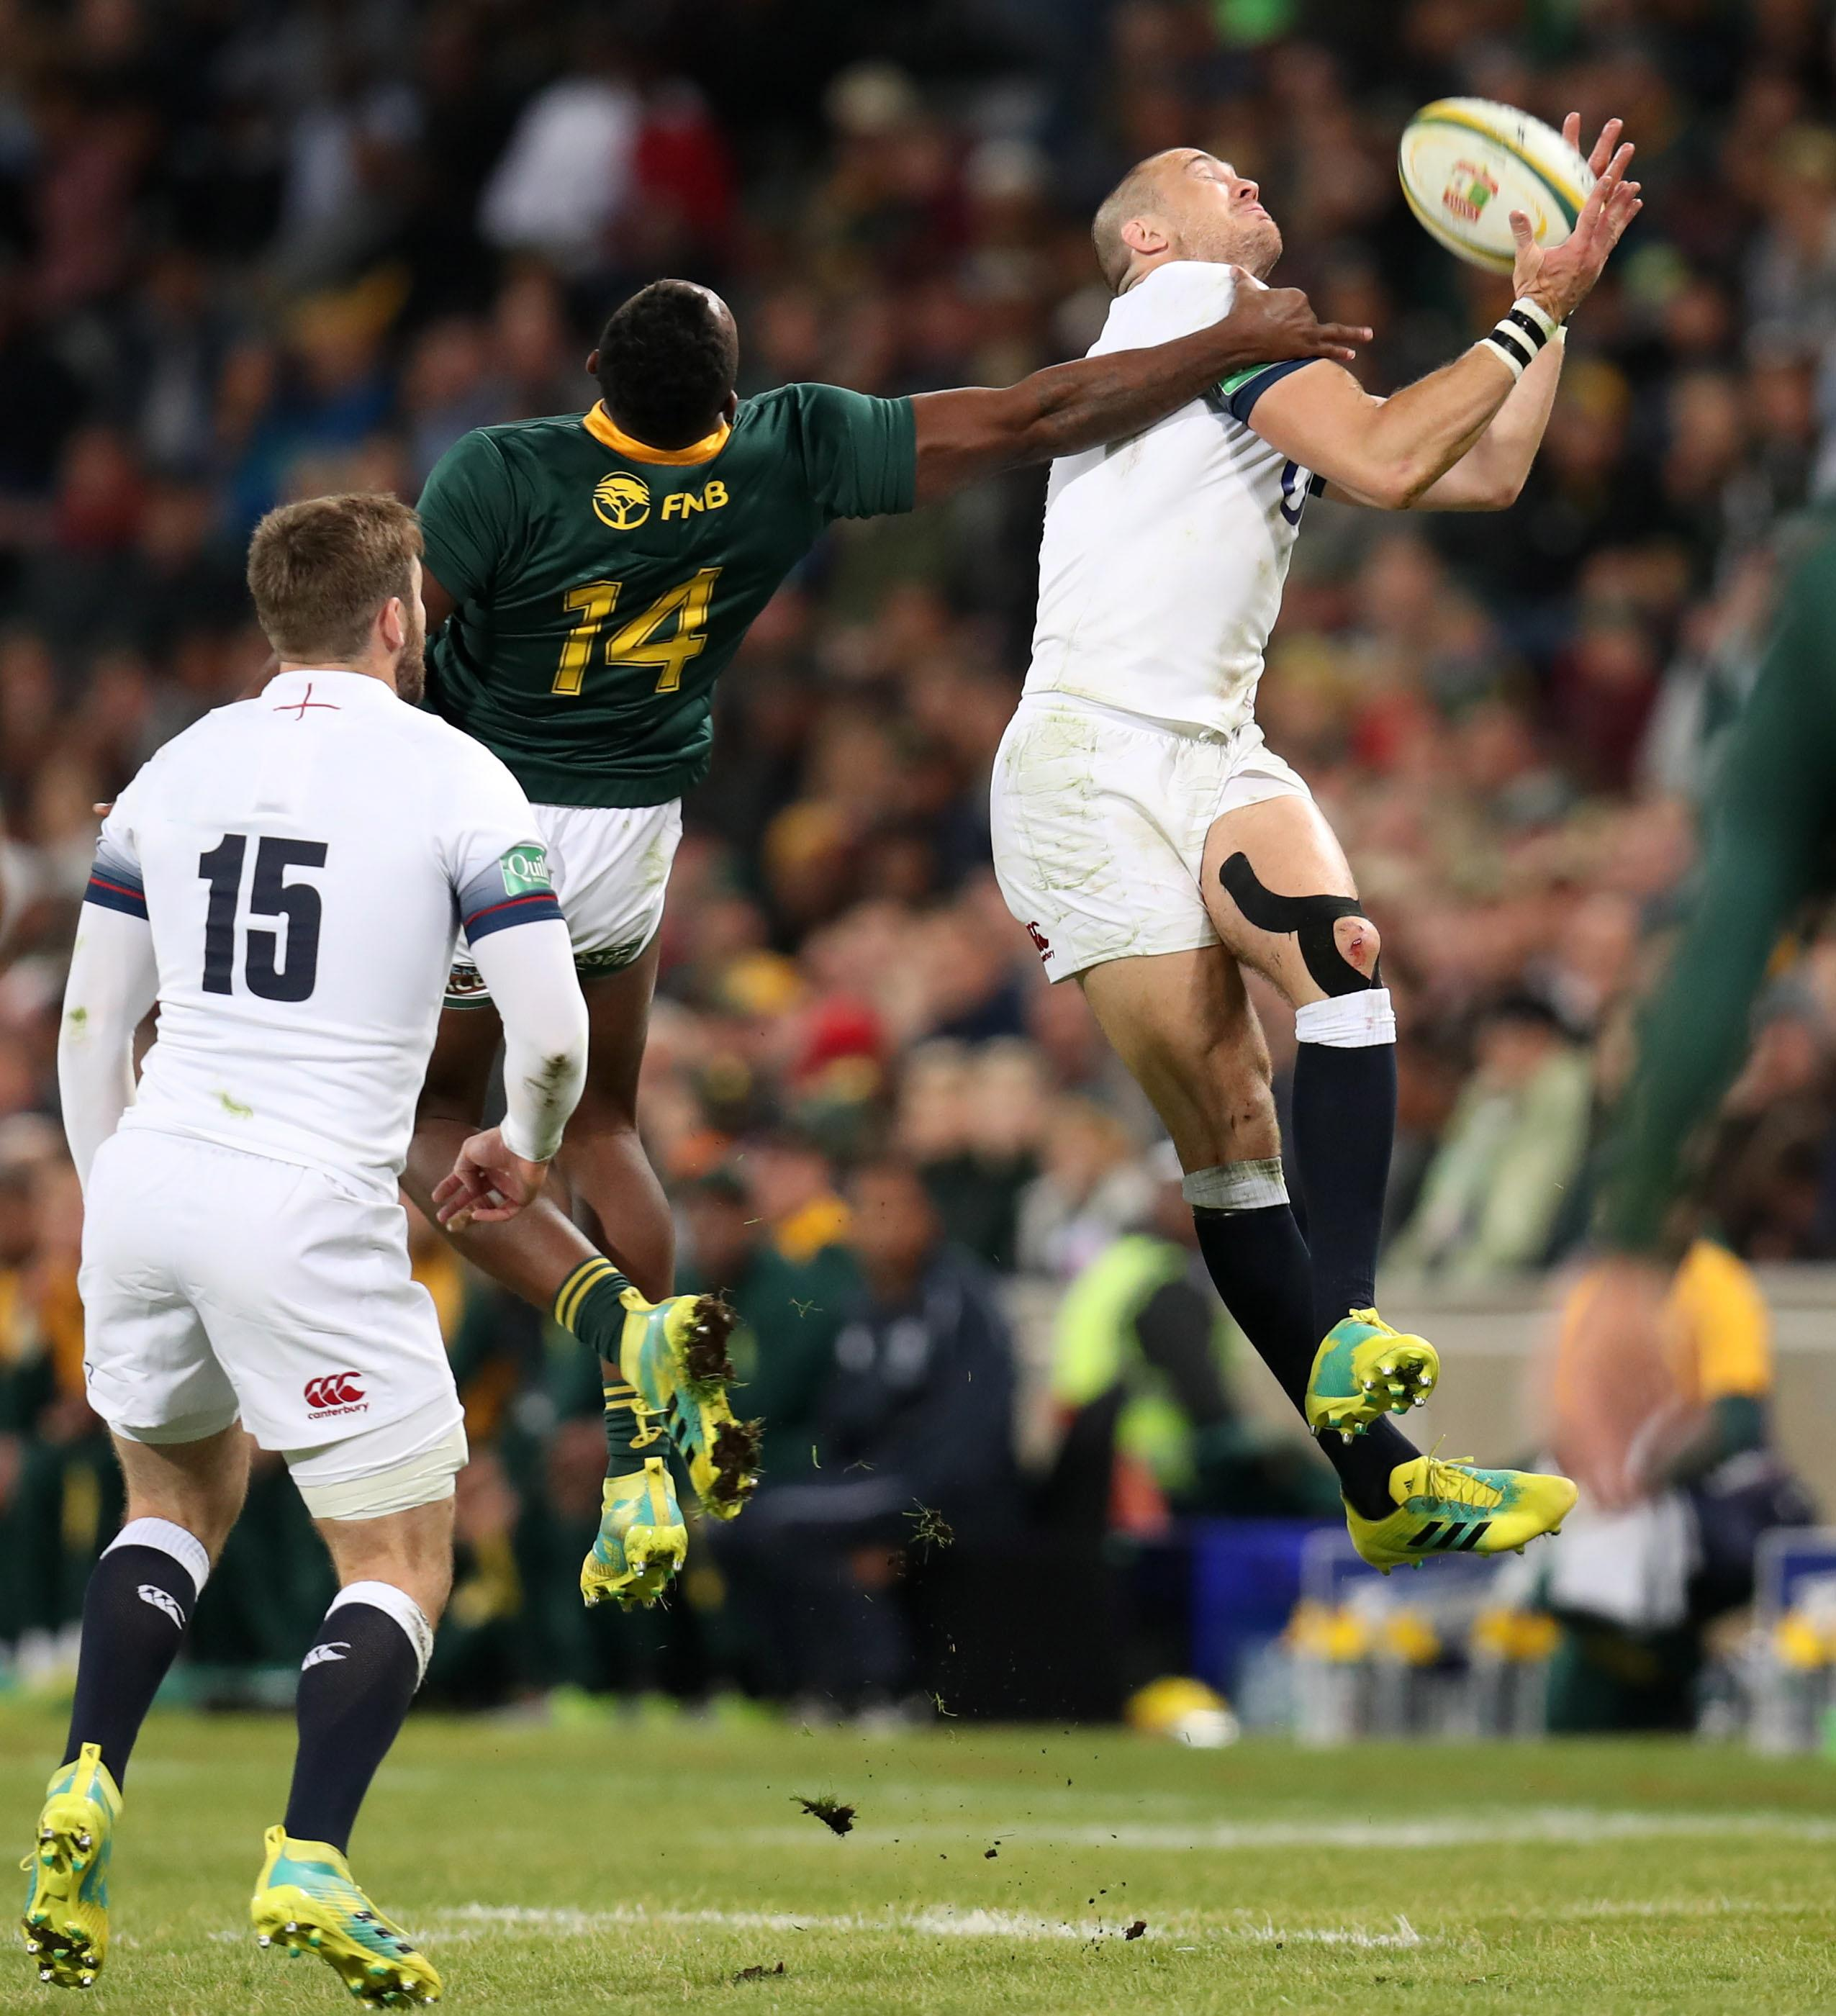 The Red Rose have now lost six games in a row - as Eddie Jones comes under intense pressure